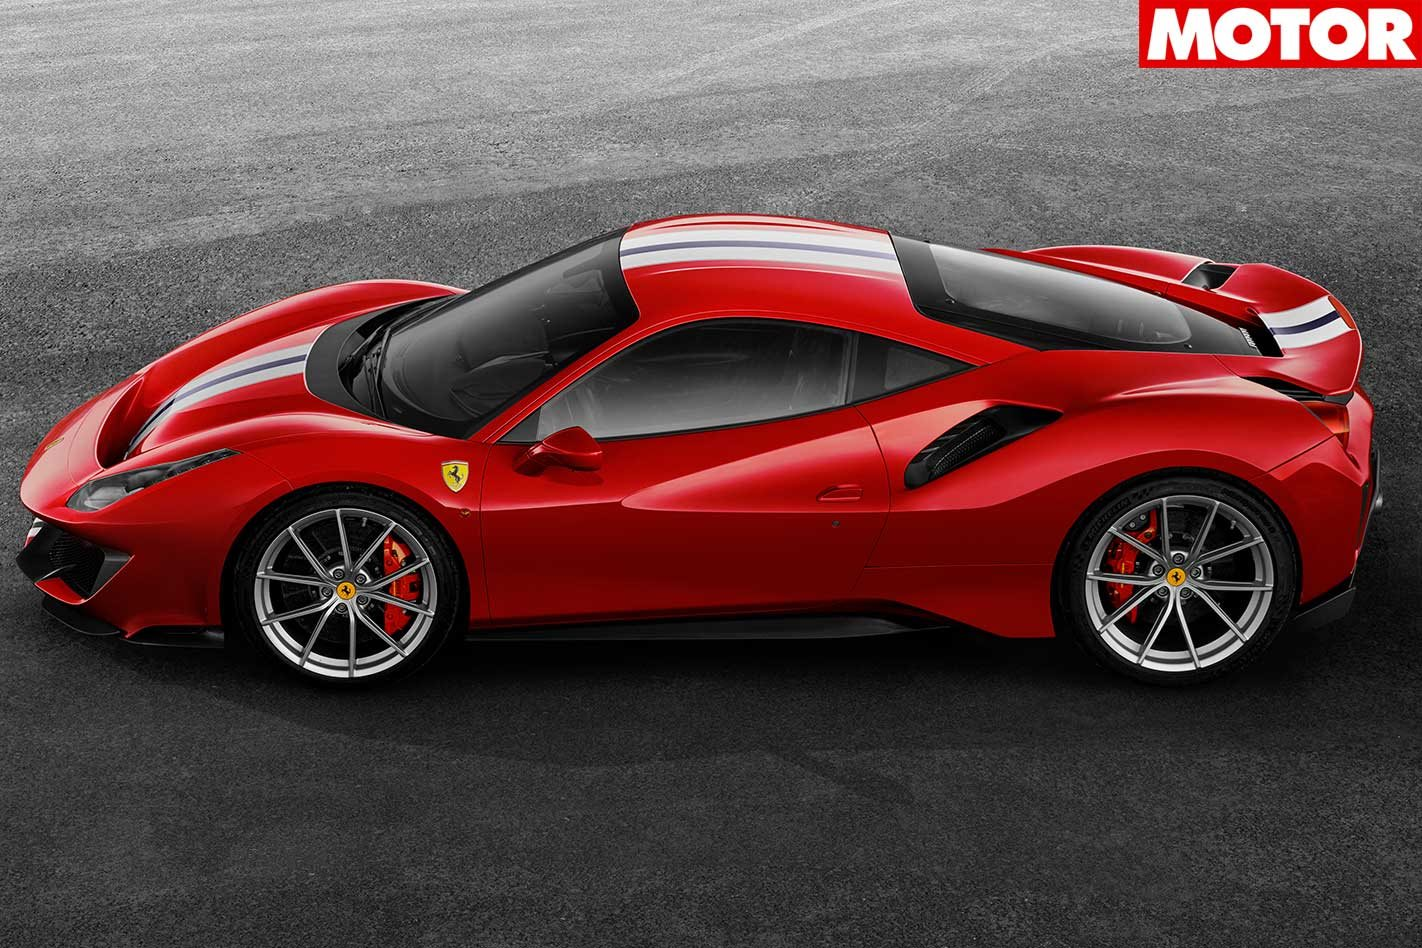 Oman- Ferrari 488 Pista: Brilliant track-derived combination of exhilaration and performance